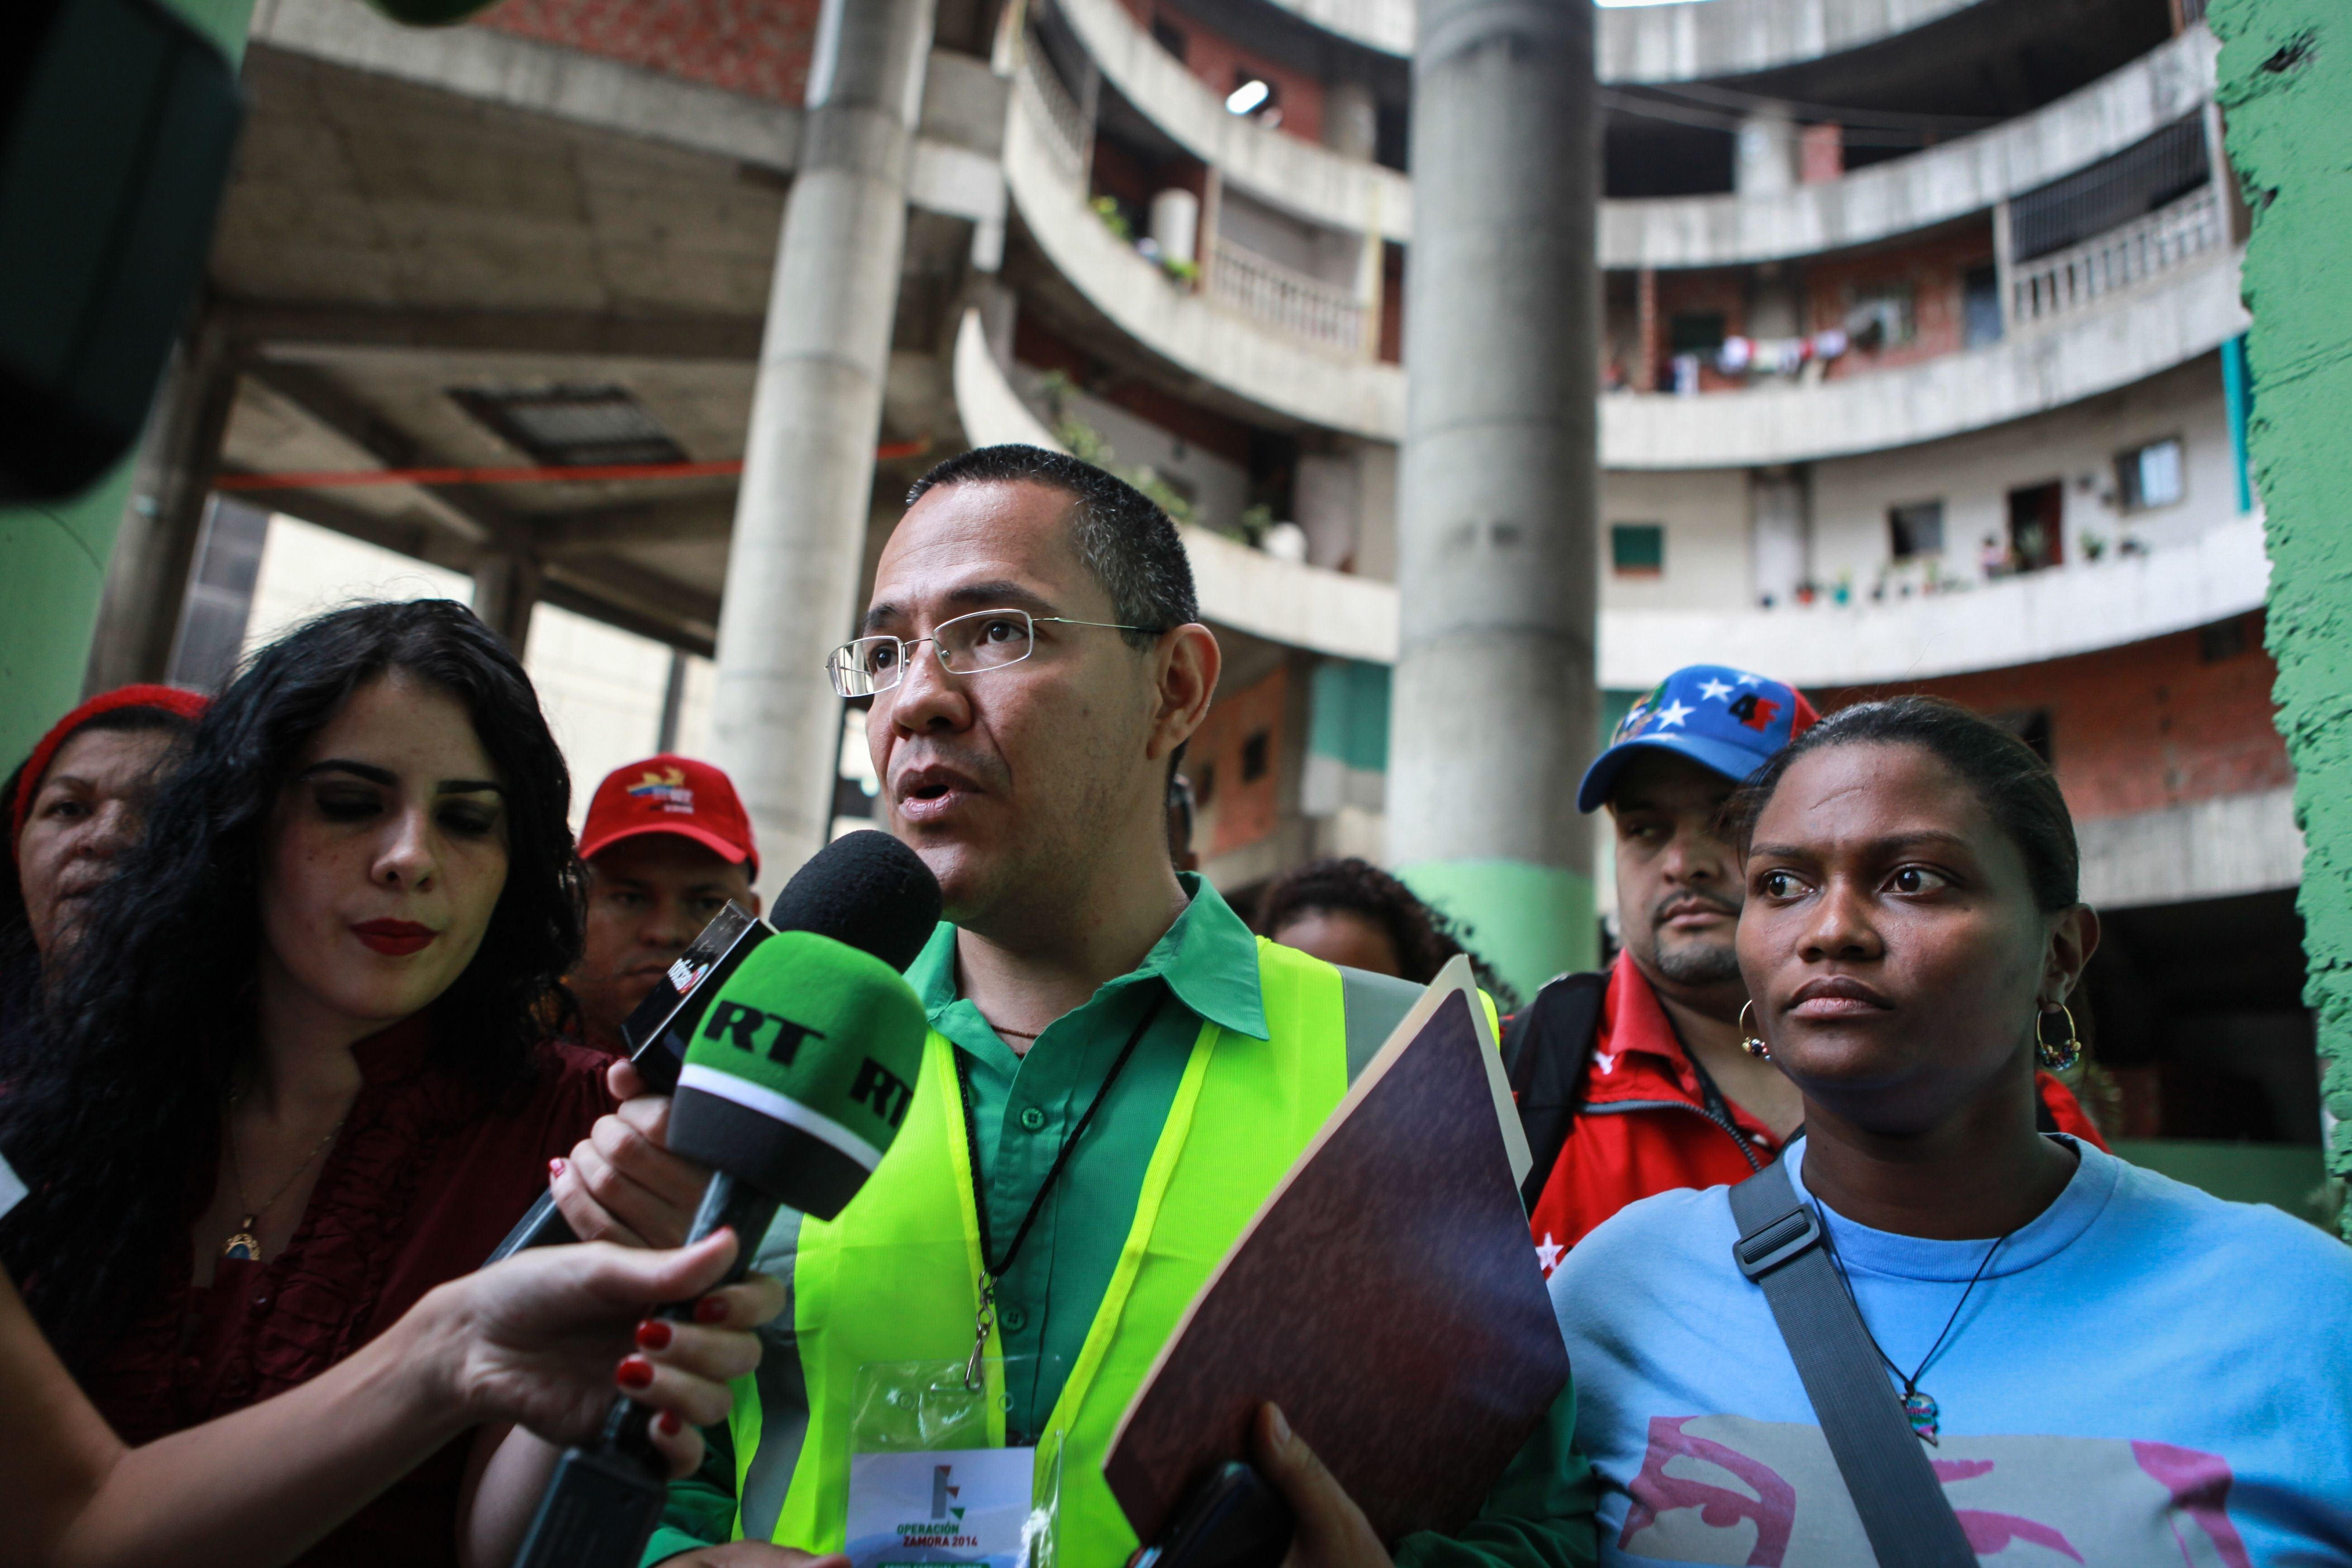 Image: The Minister of State for the Urban Transformation of Greater Caracas, Ernesto Villegas, speaks to the press during the eviction of the Tower of David